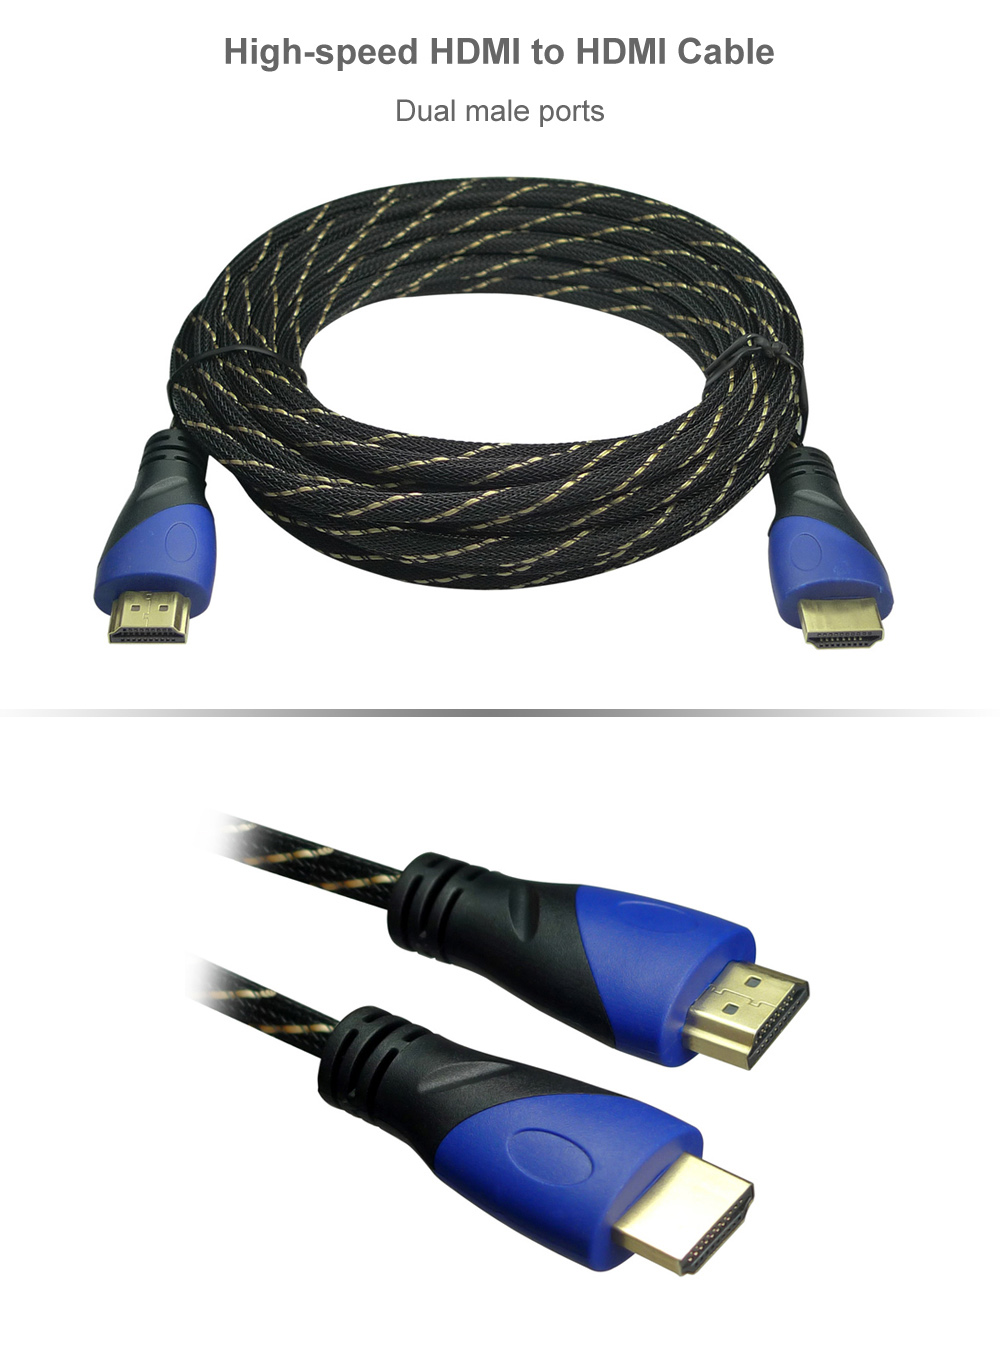 6m High-speed HDMI to HDMI Cable Dual Male Port